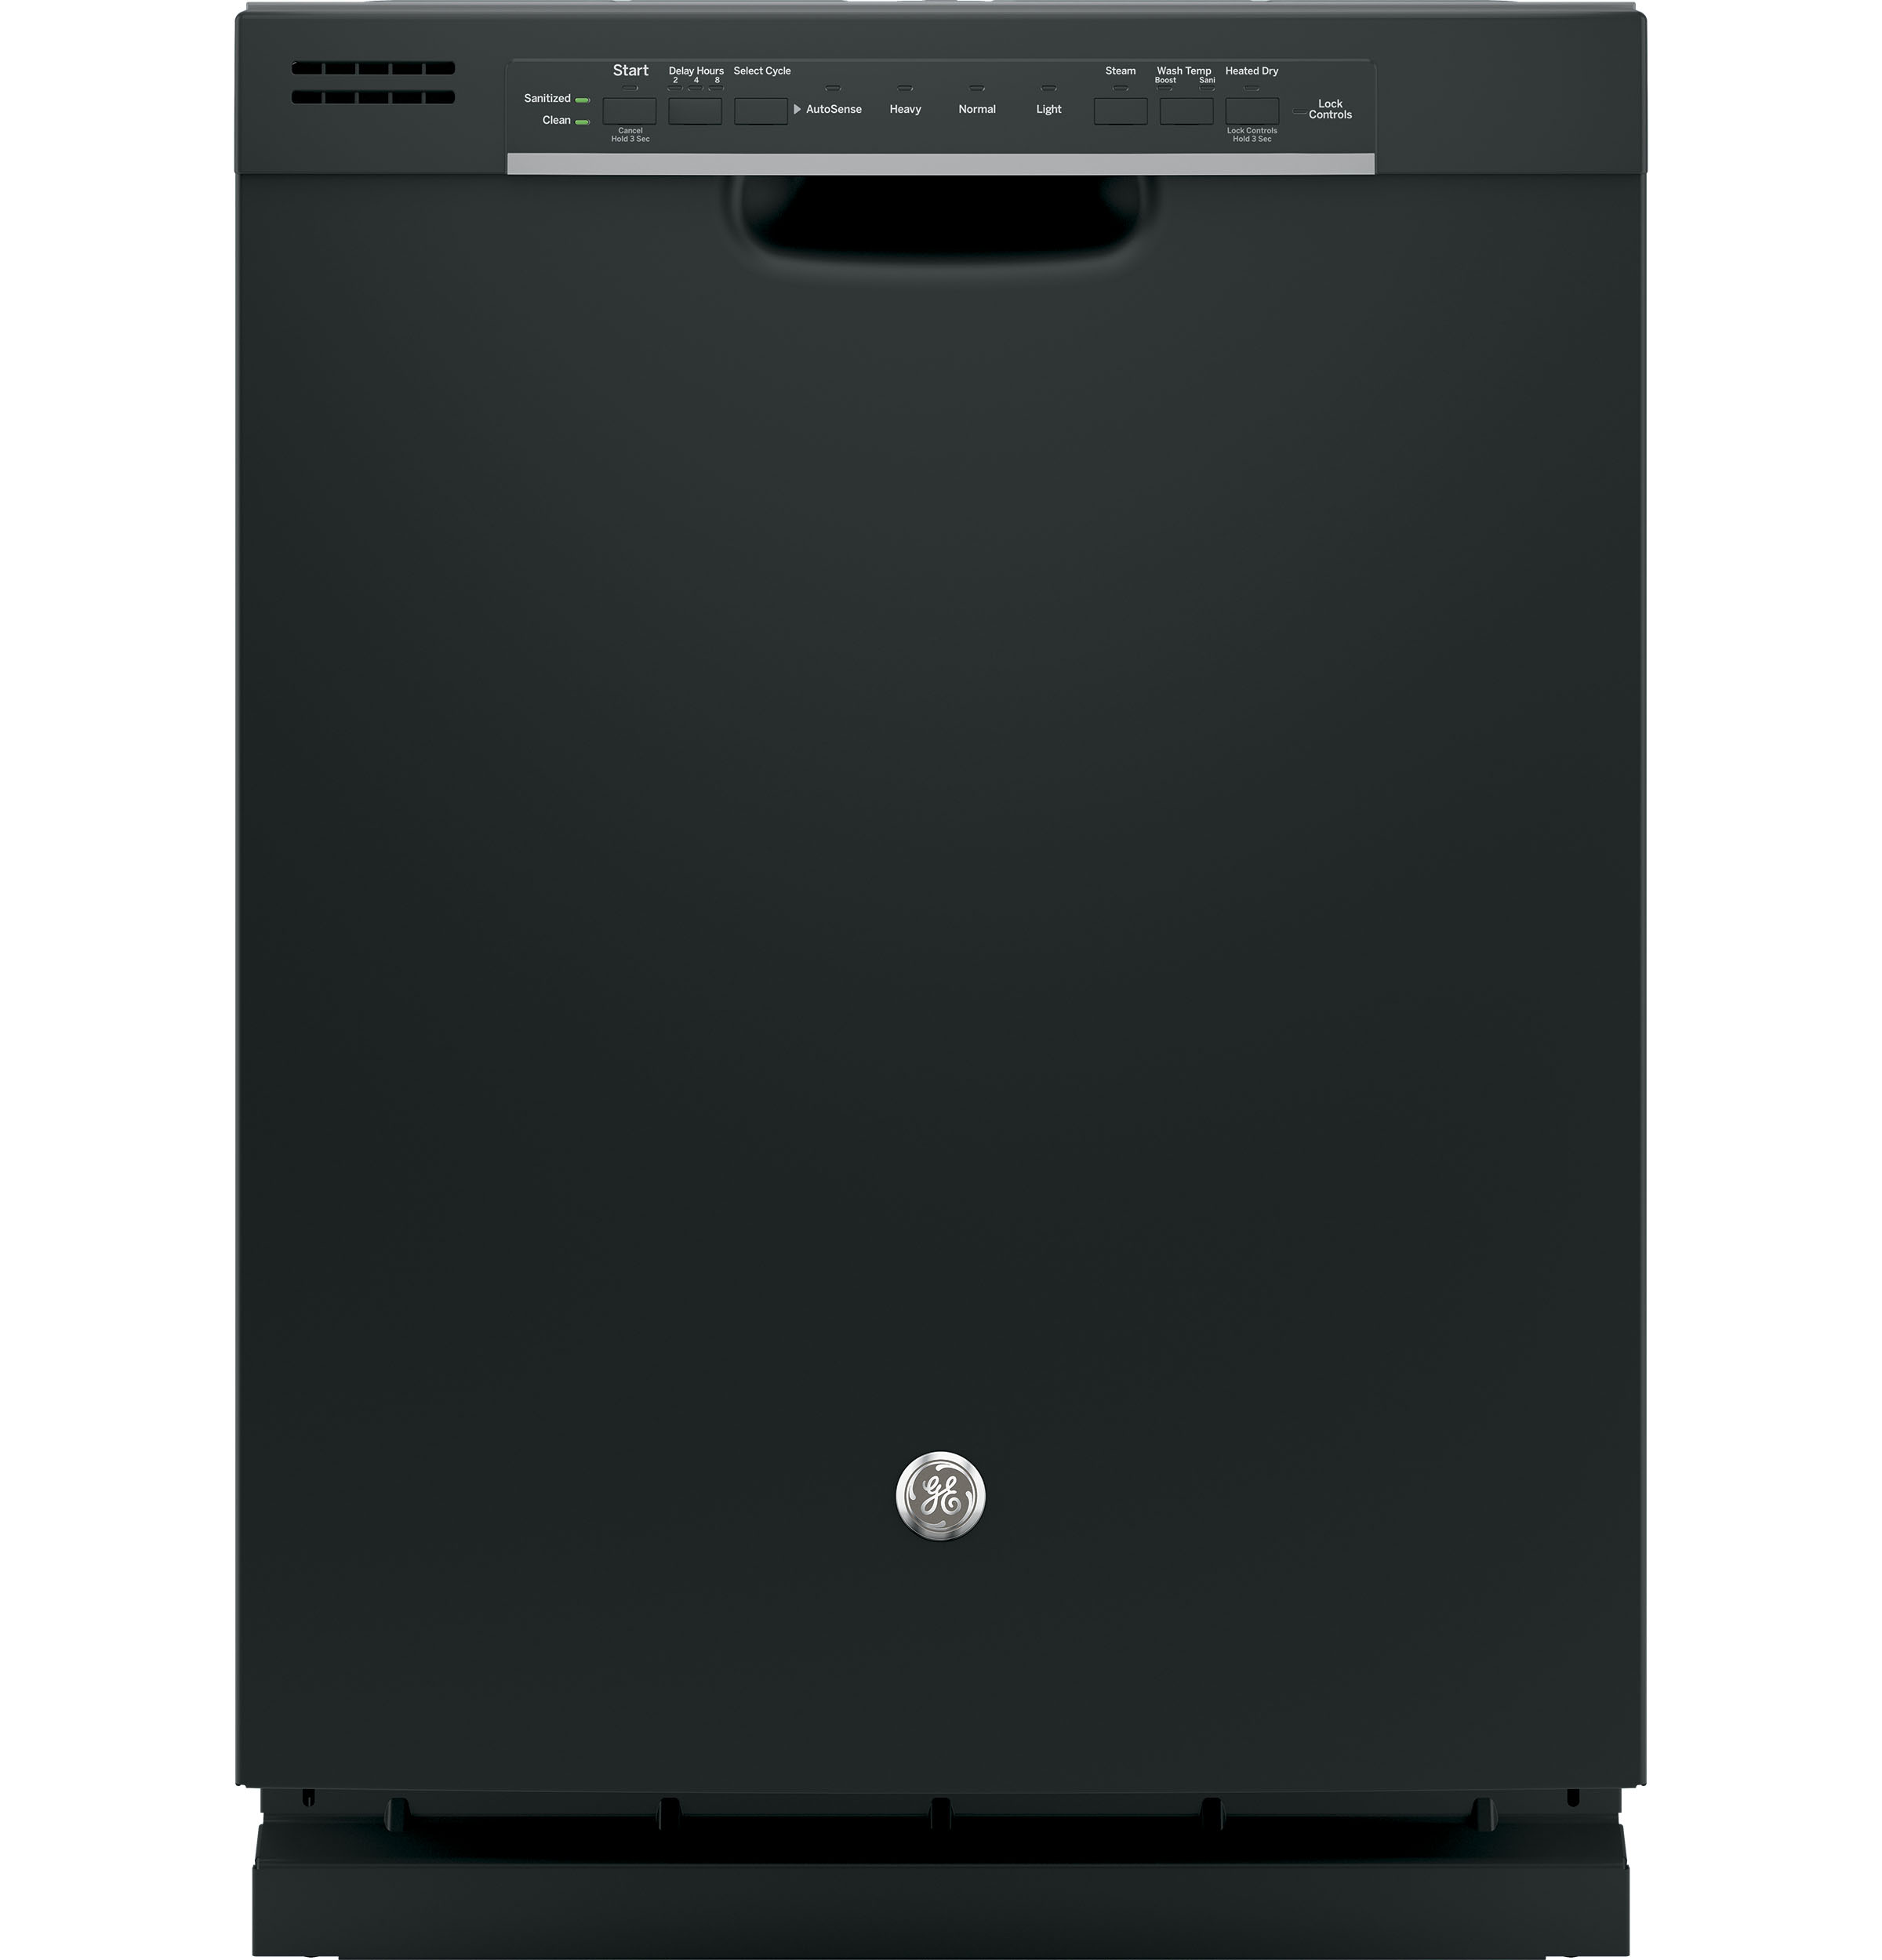 Ge Dishwasher With Front Controls Gdf520pgjbb Appliances Rca Wiring Diagram Product Image